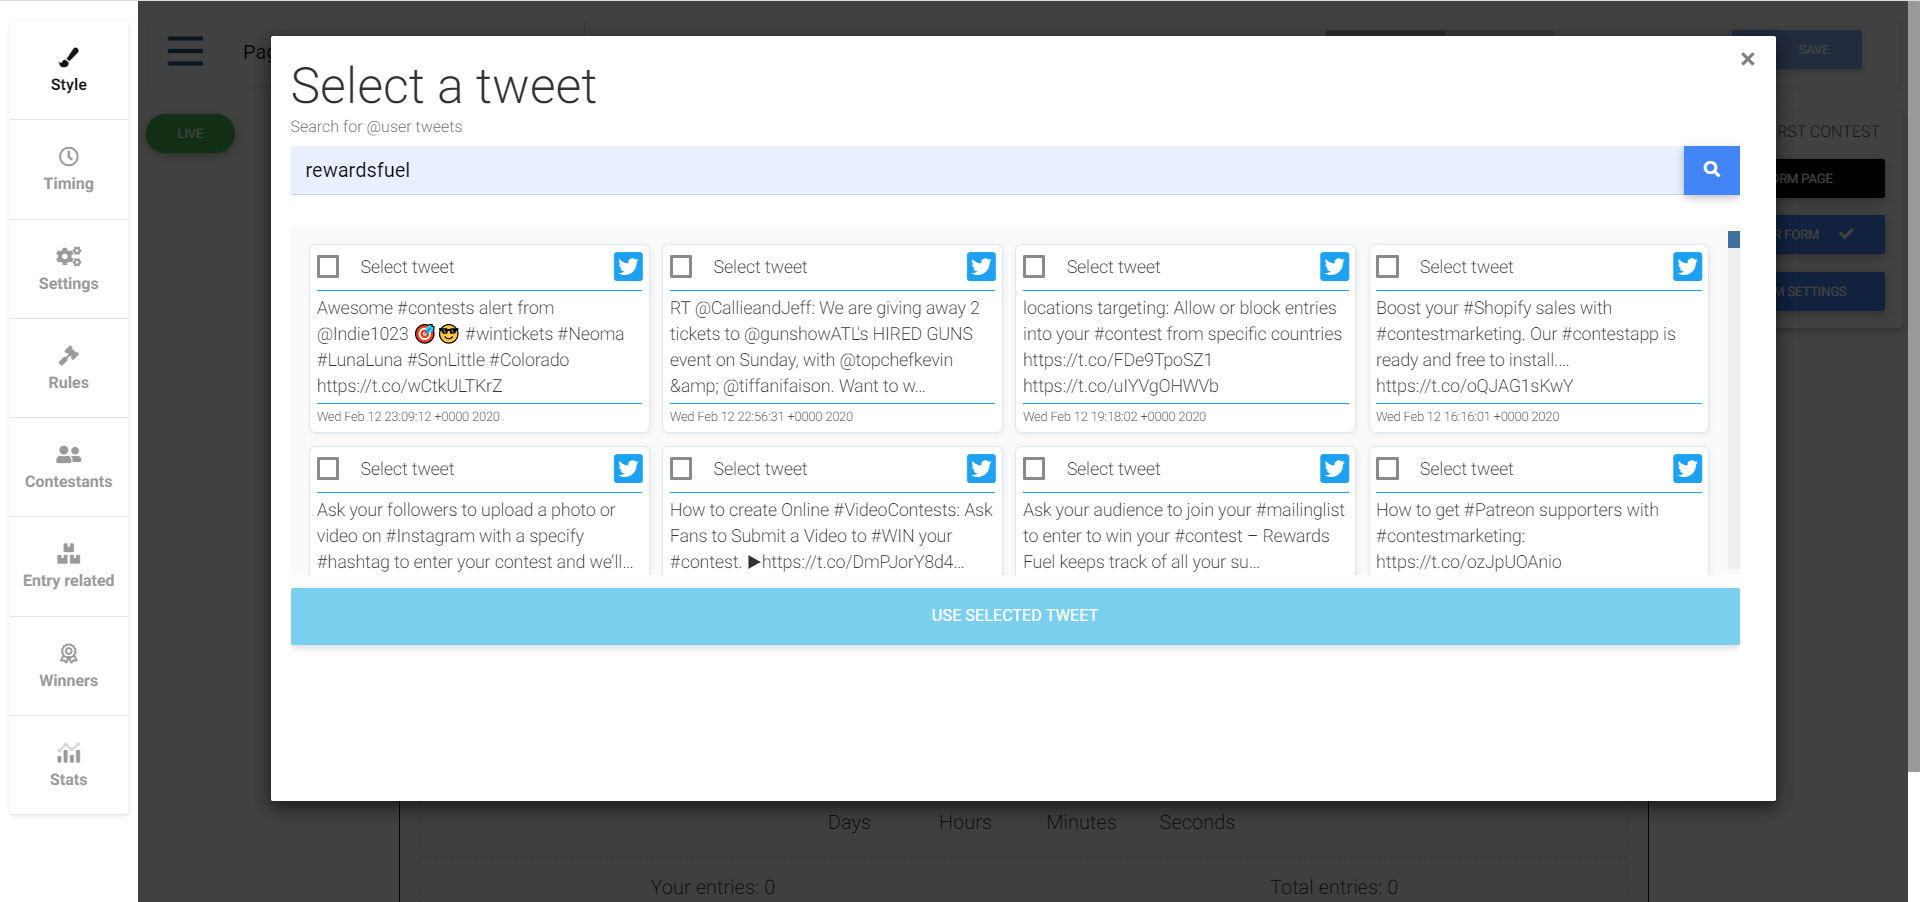 Select the tweet you want to use in your Twitter contest